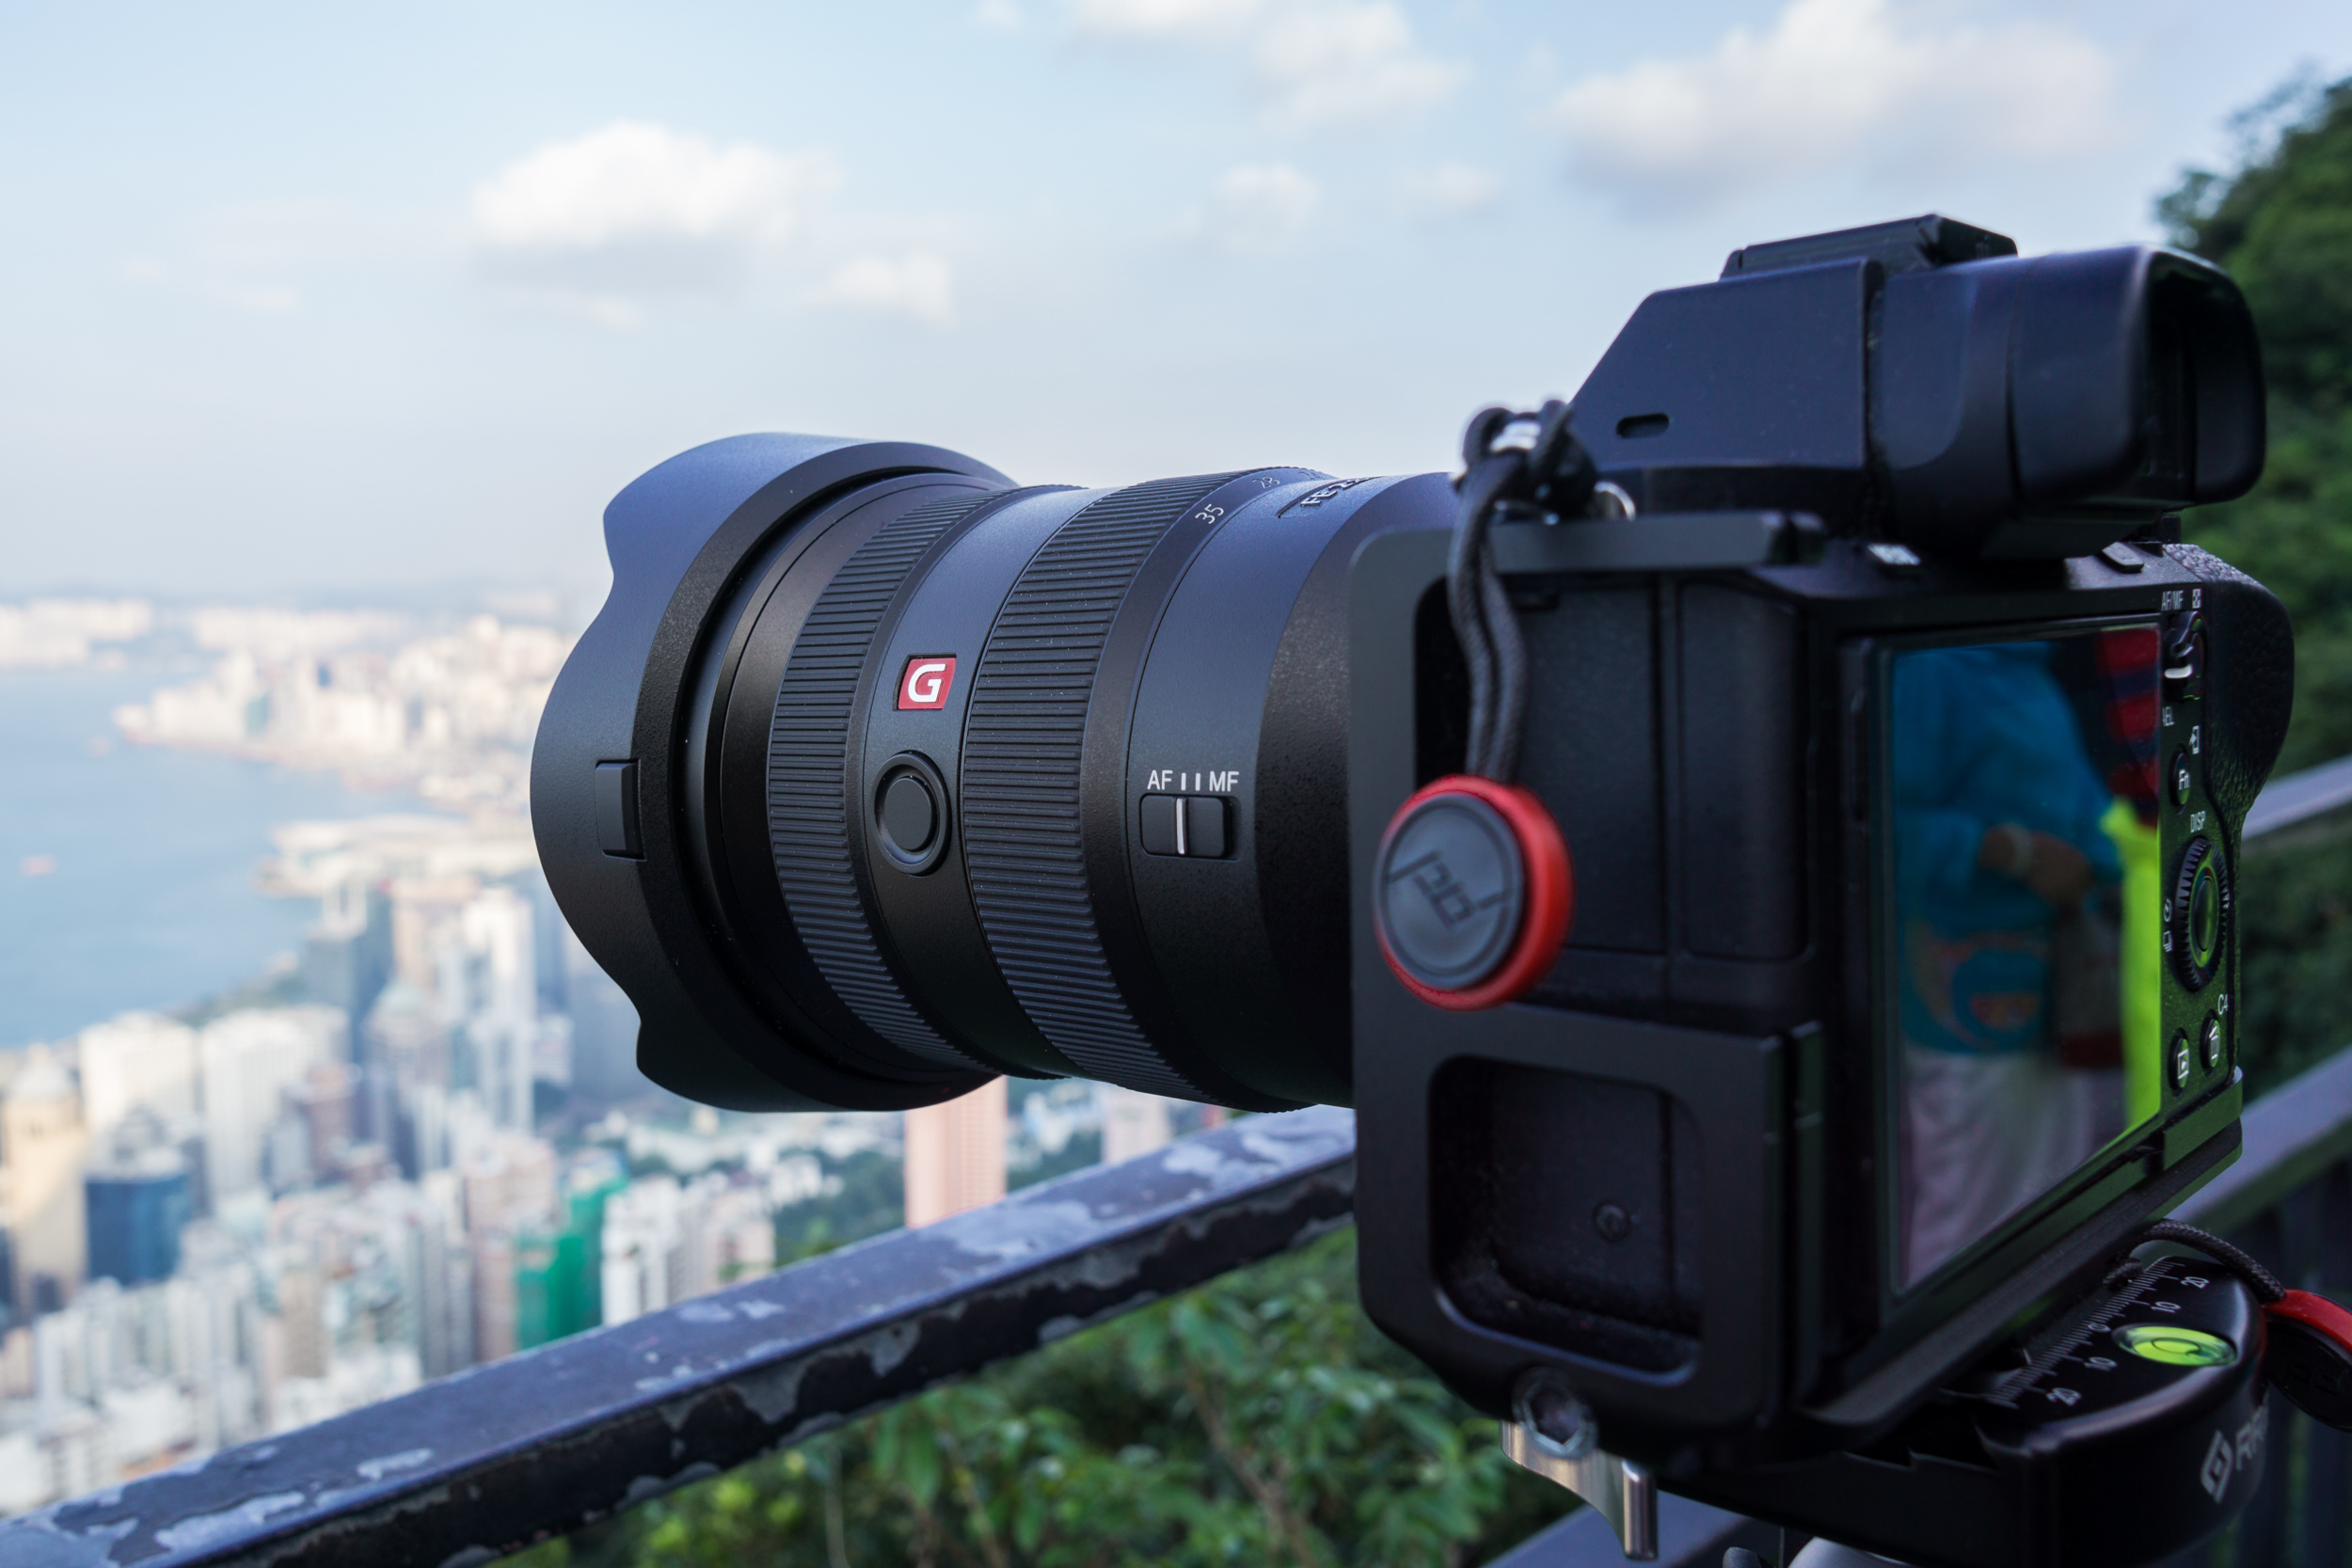 16-35mm f/2.8 GM mounted on the Sony a7 II at Victoria Peak - Hong Kong